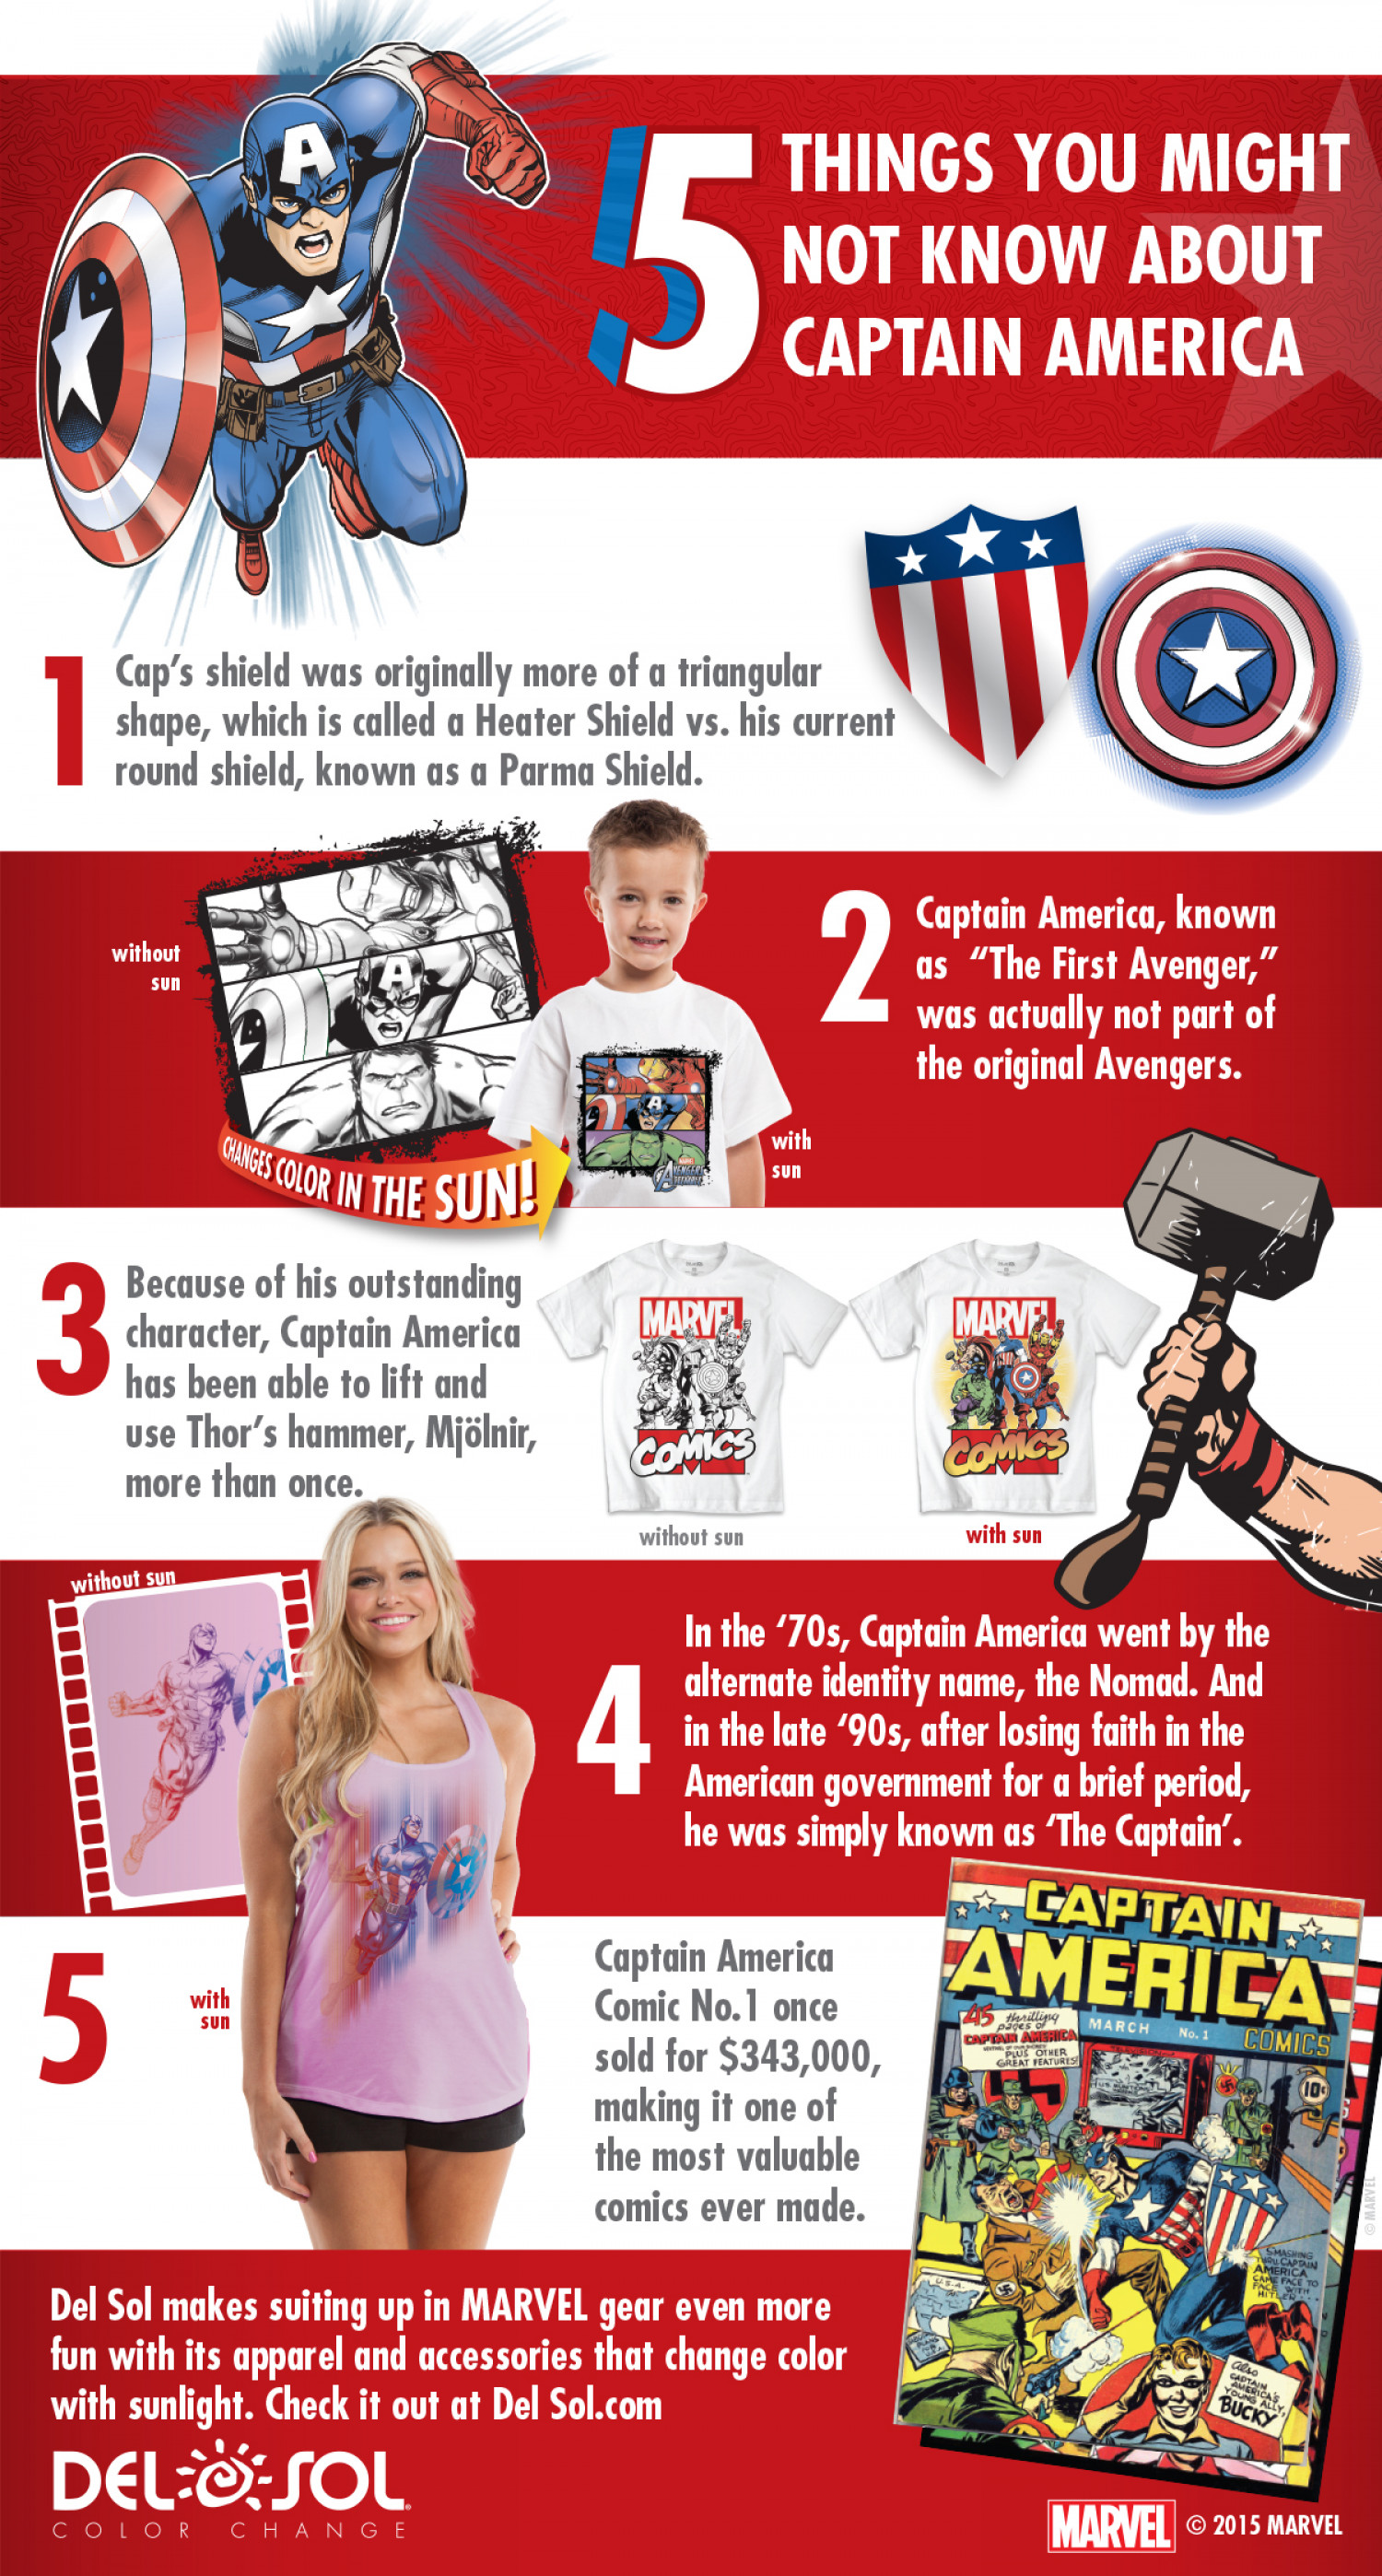 5 Things You Might Not Know About Captain America Infographic